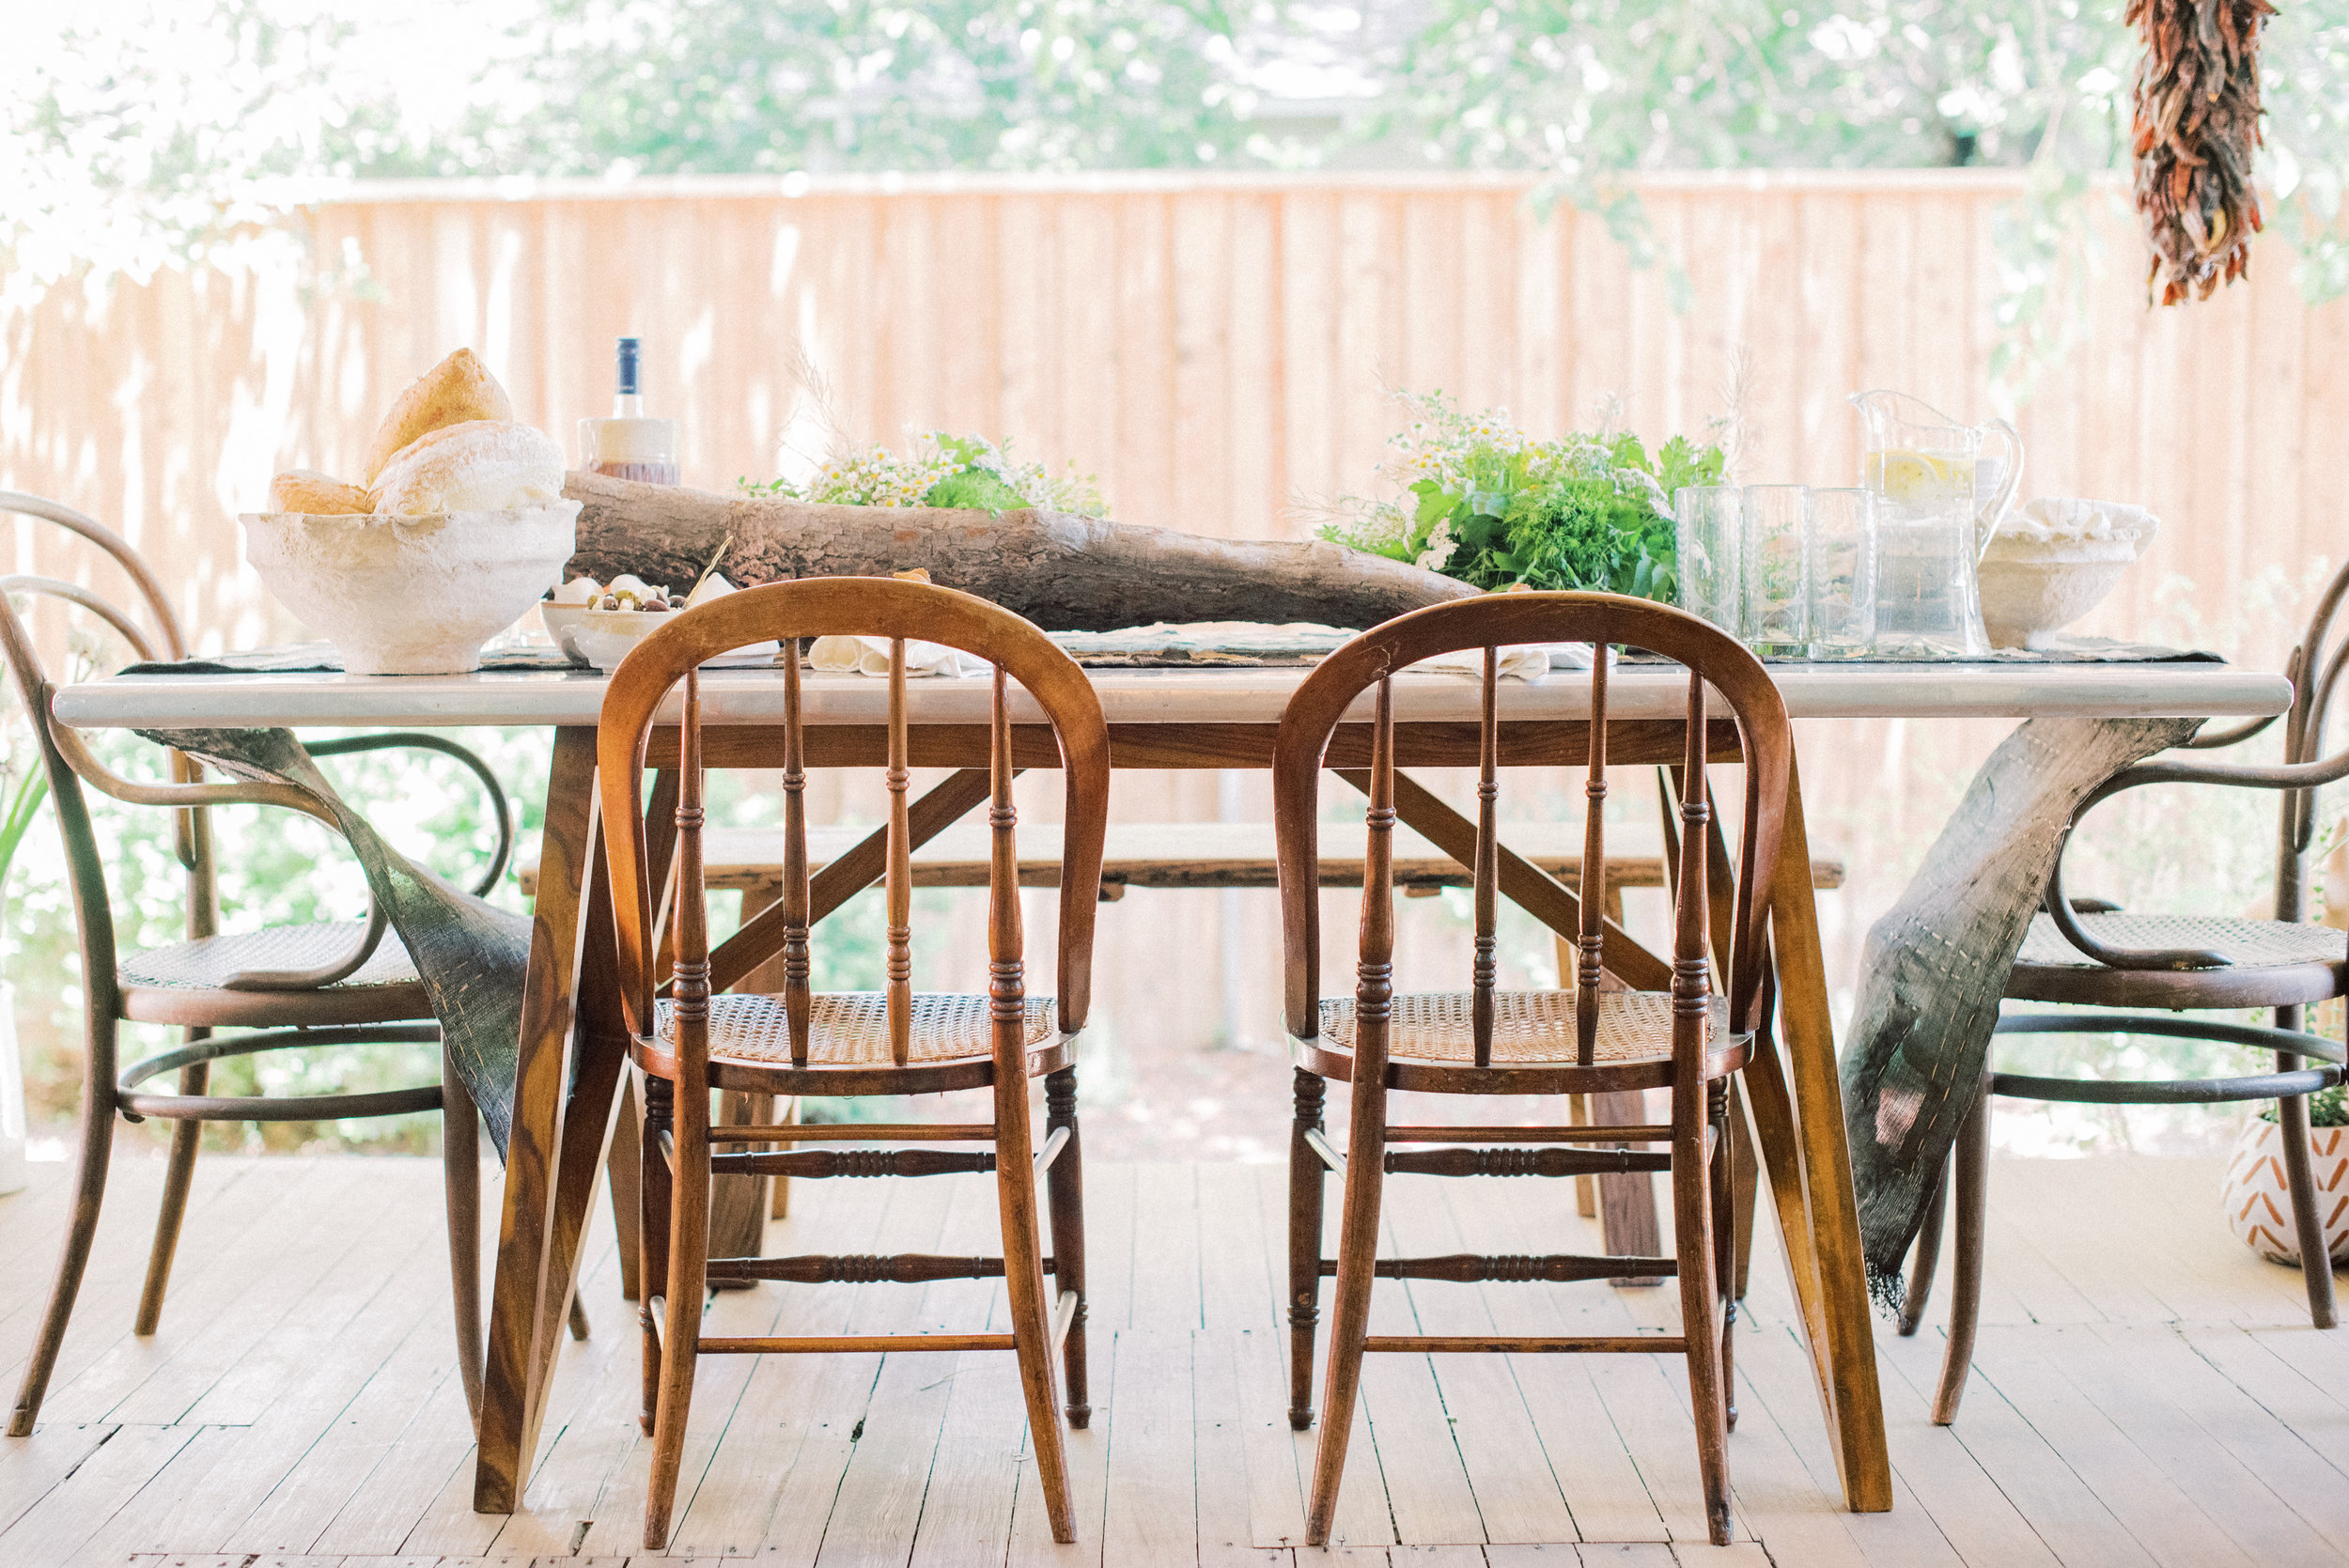 Seating - One of the big trends in weddings is mix/match chairs. We're here to tell you that it doesn't only have to happen at a big event. The mix added to your home or patio makes everything a little more interesting!